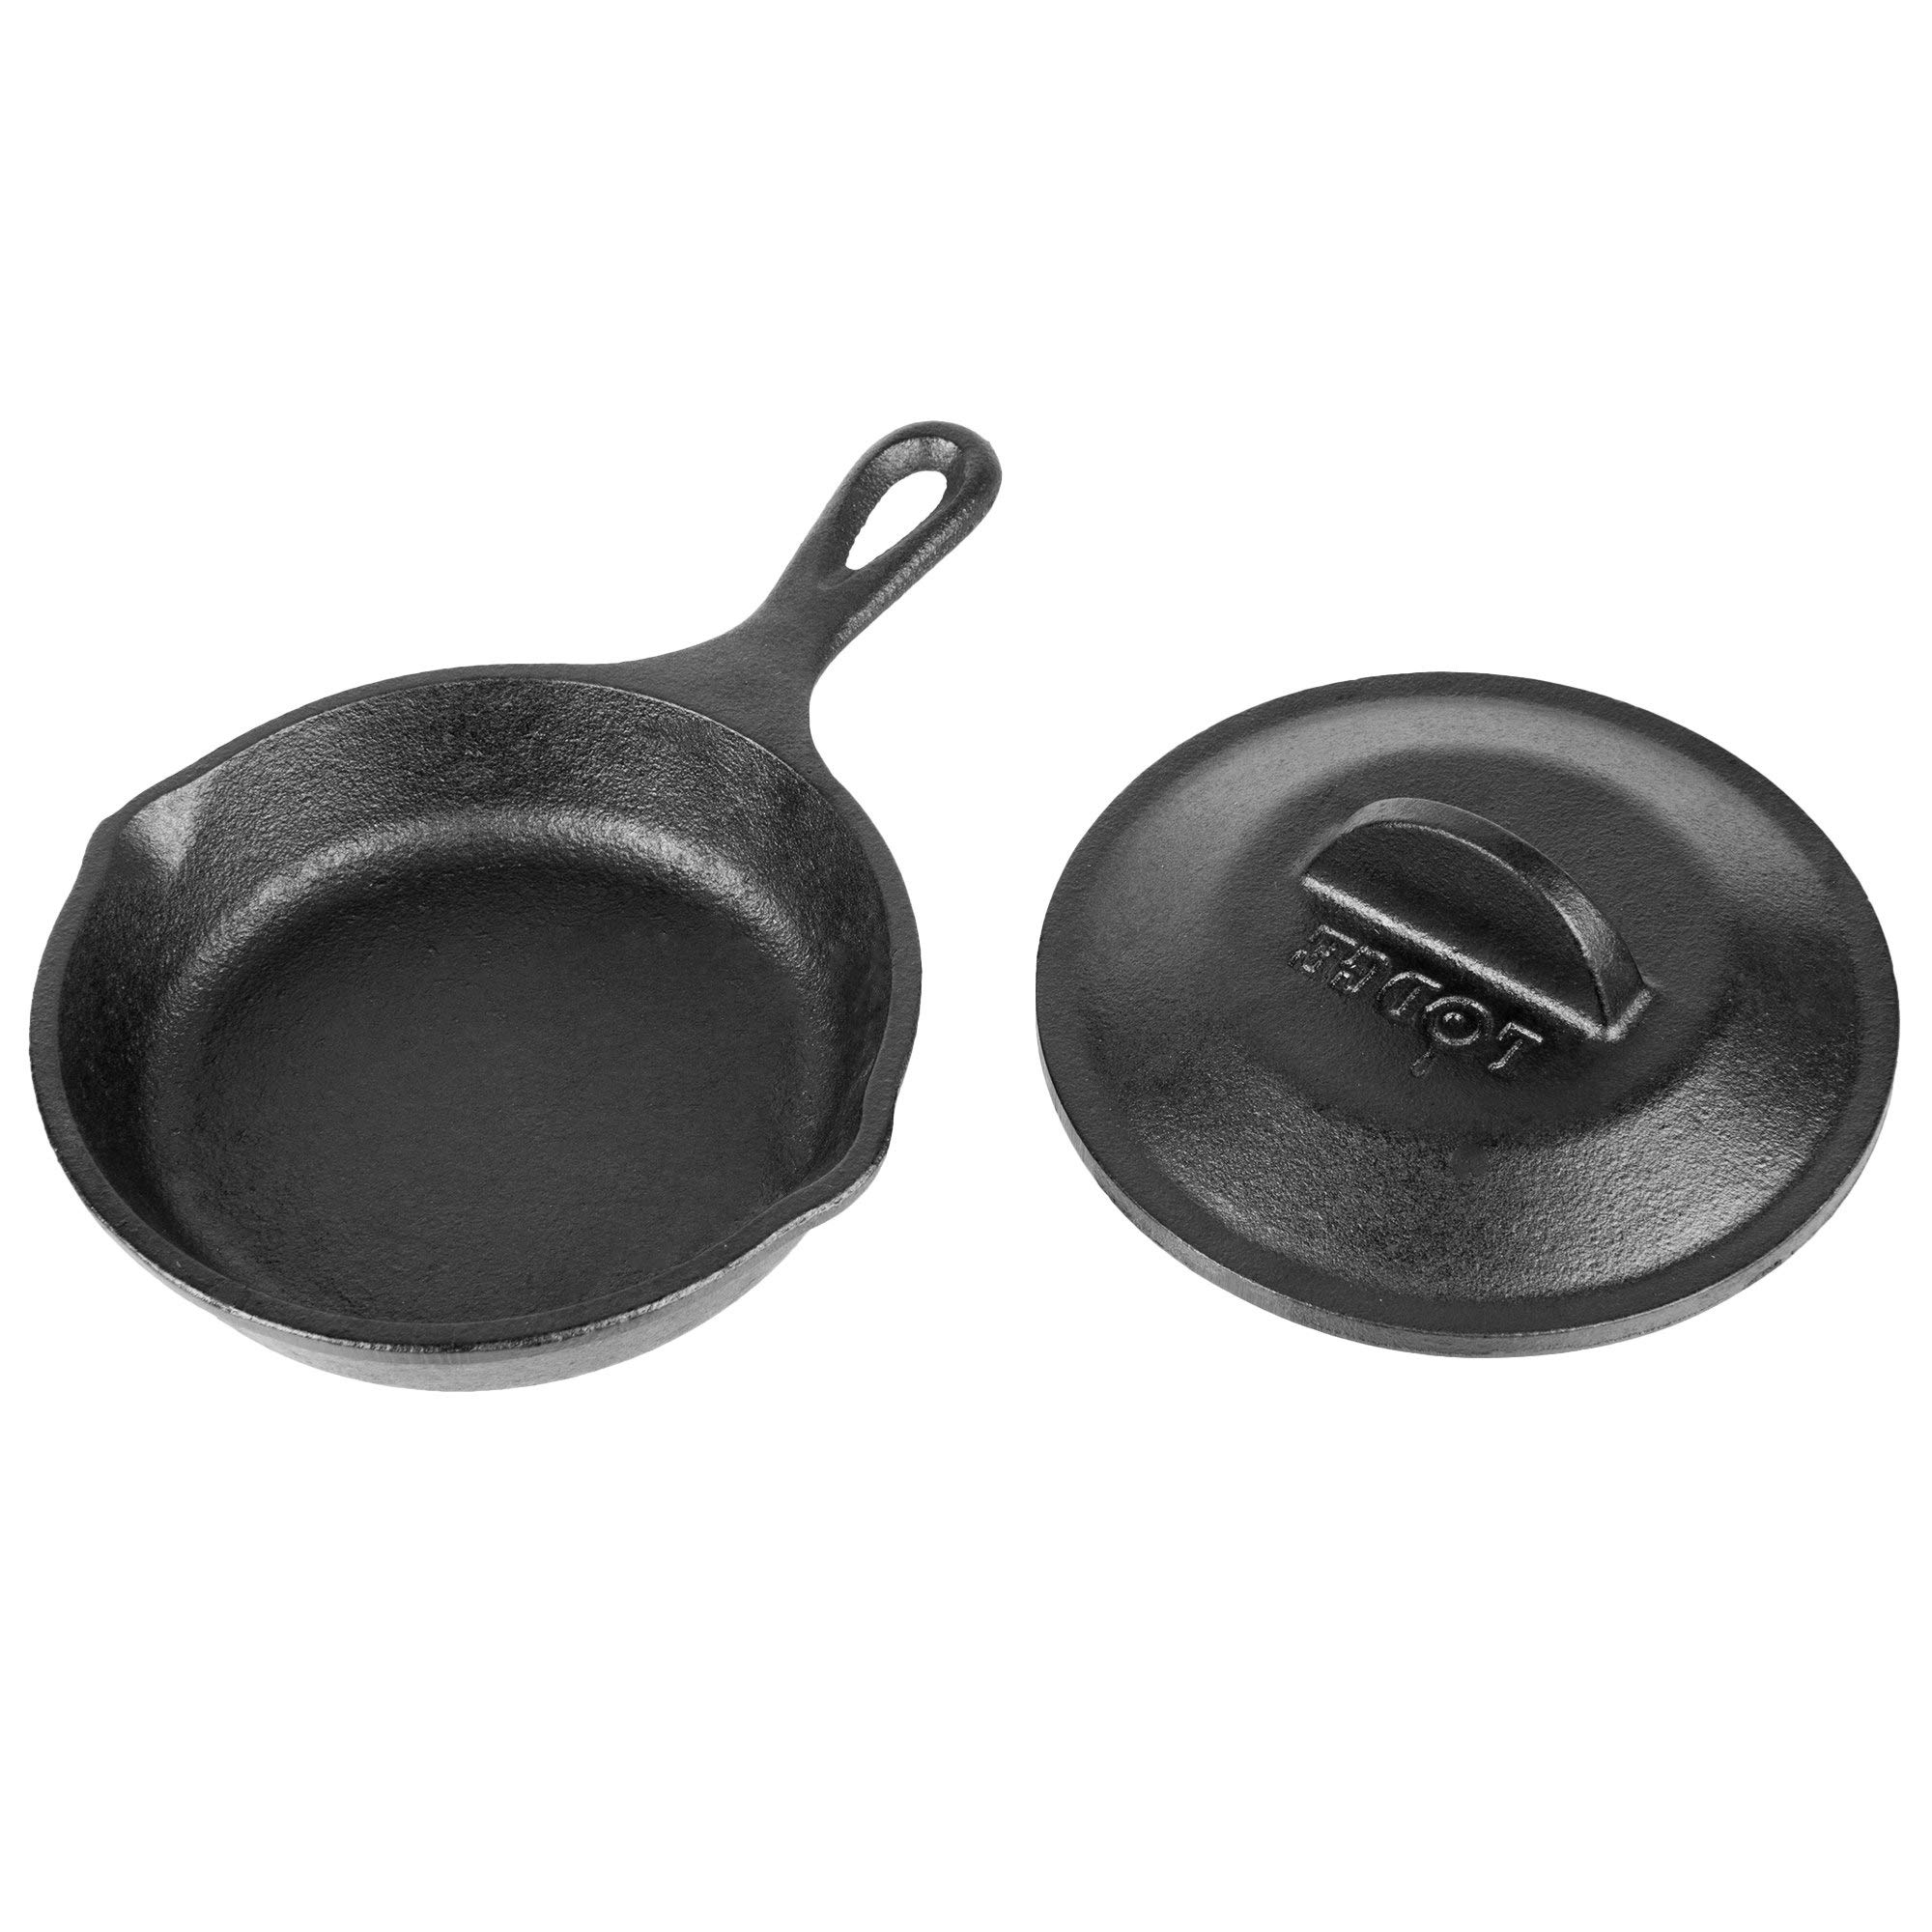 Lodge 5'' Round Pre-Seasoned Heat-Treated Cast Iron Individual Serving Skillet with Lid